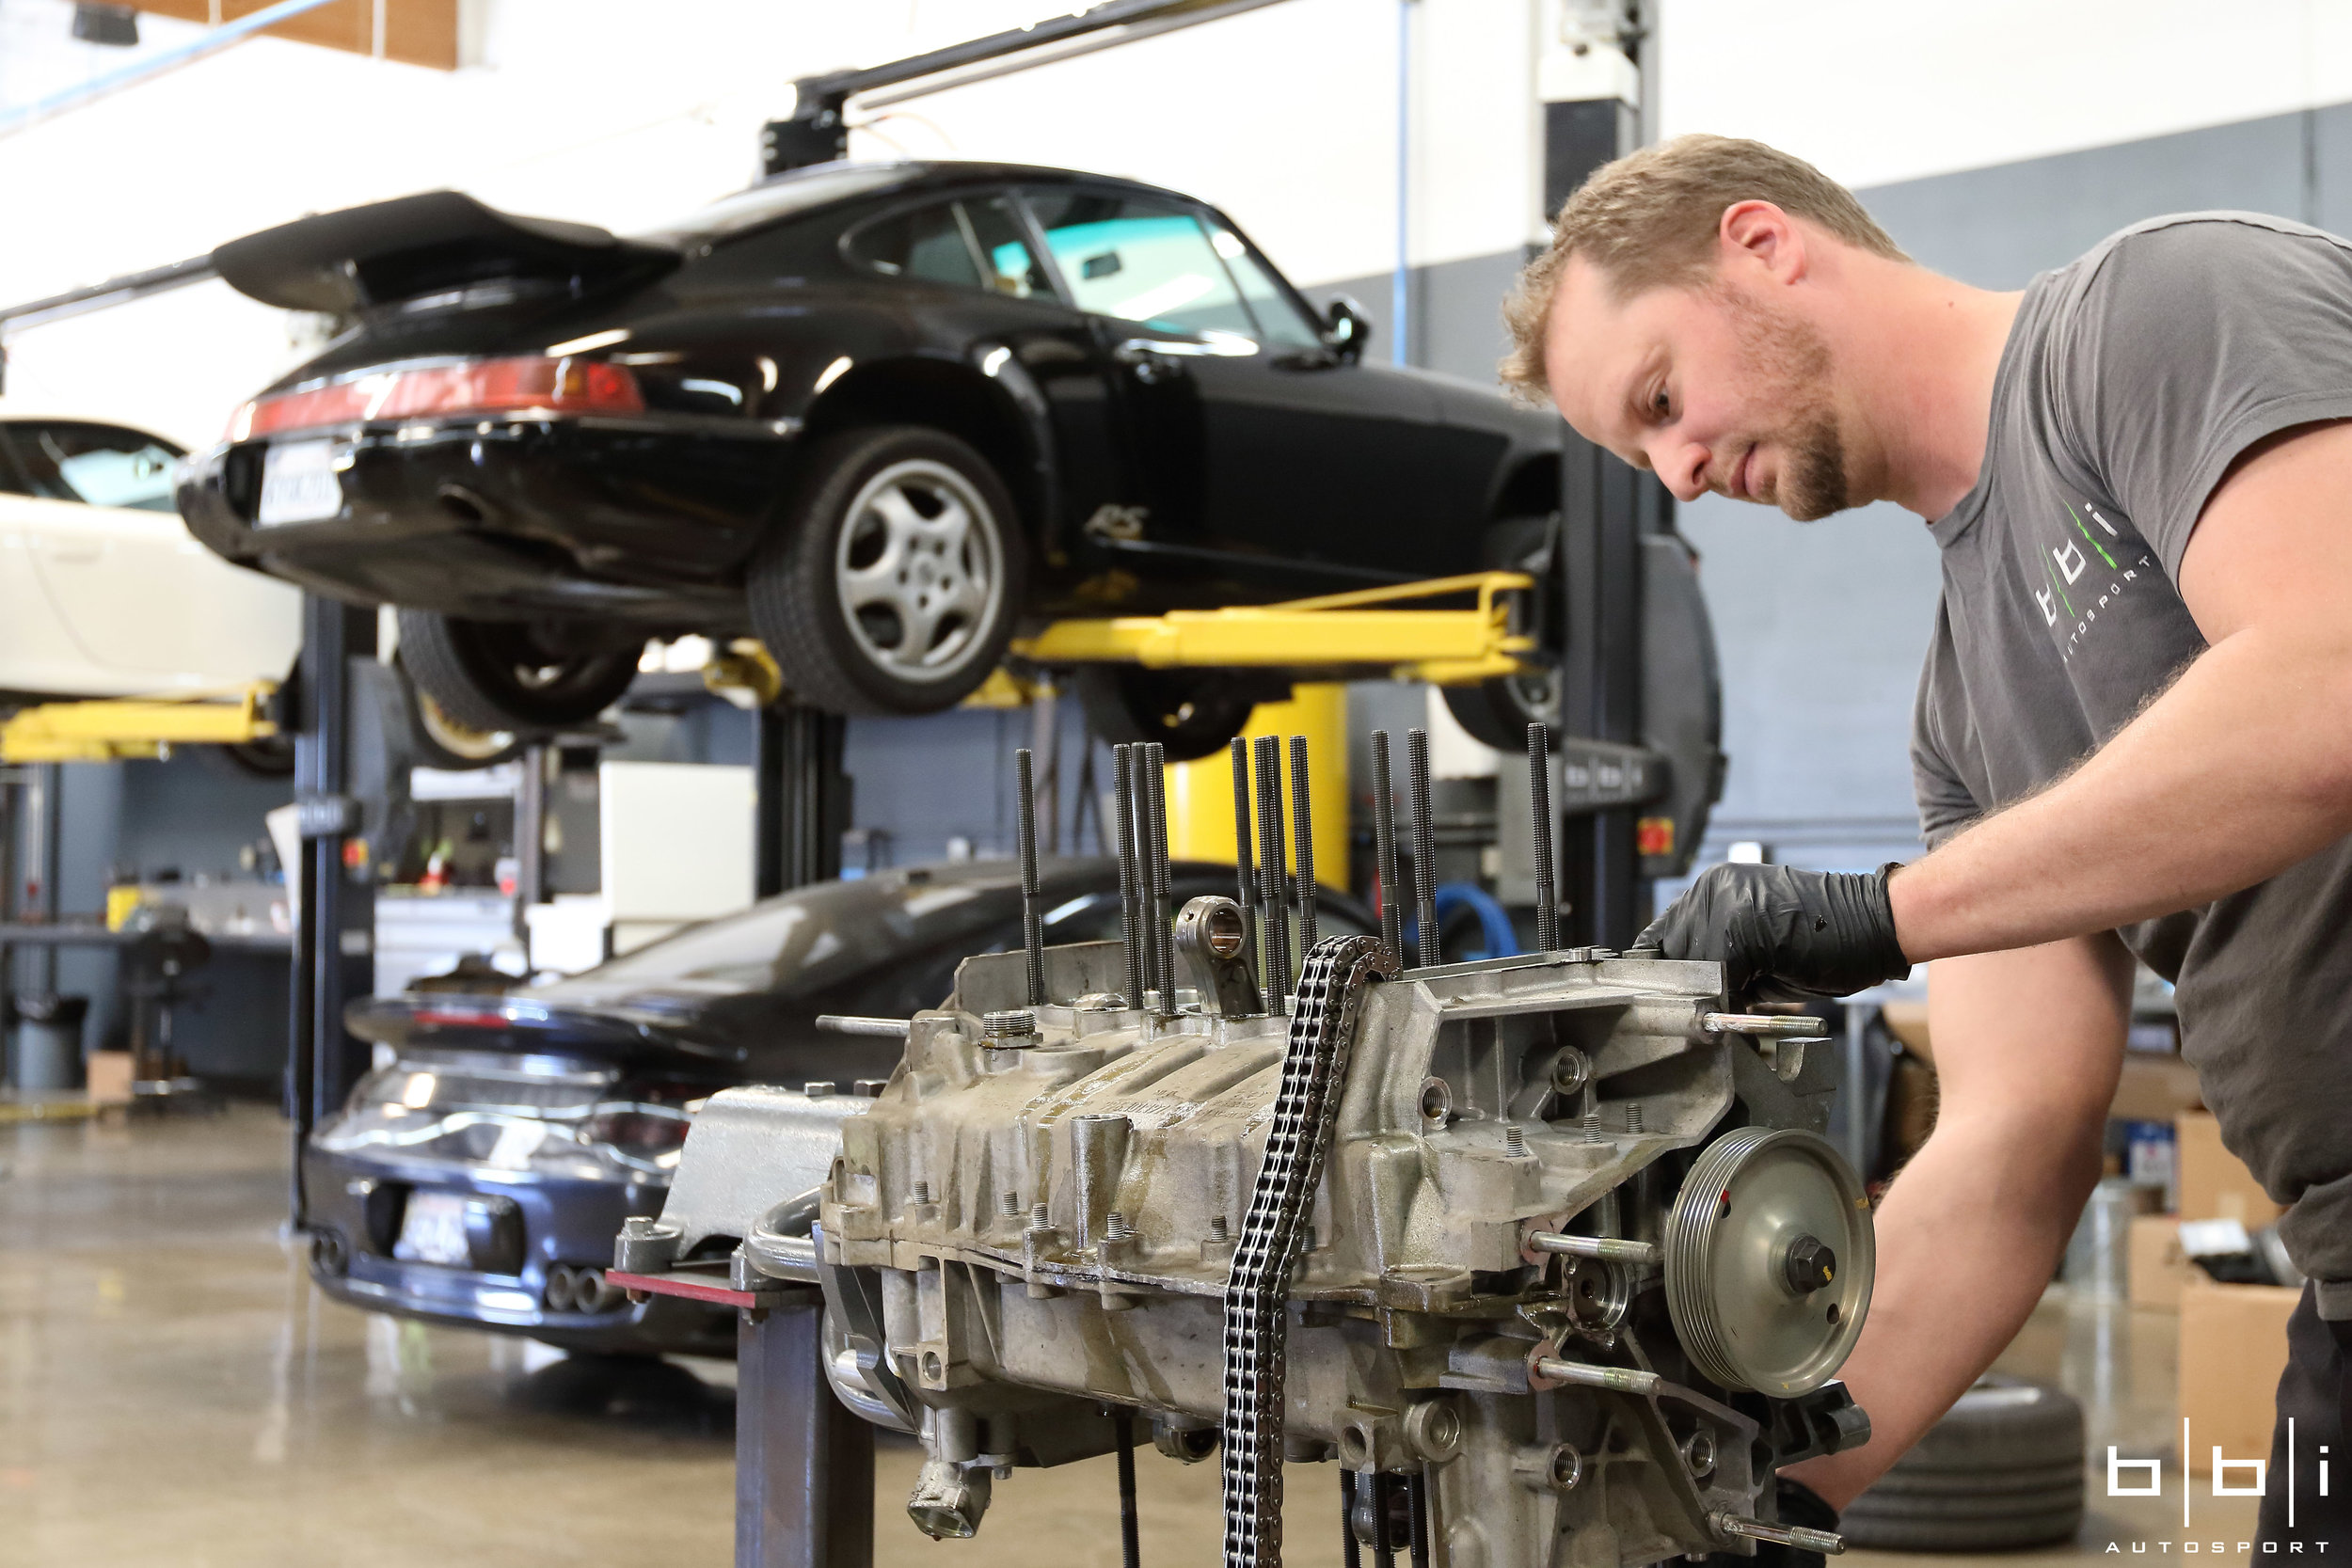 Disassembling the engine to clean and inspect components.